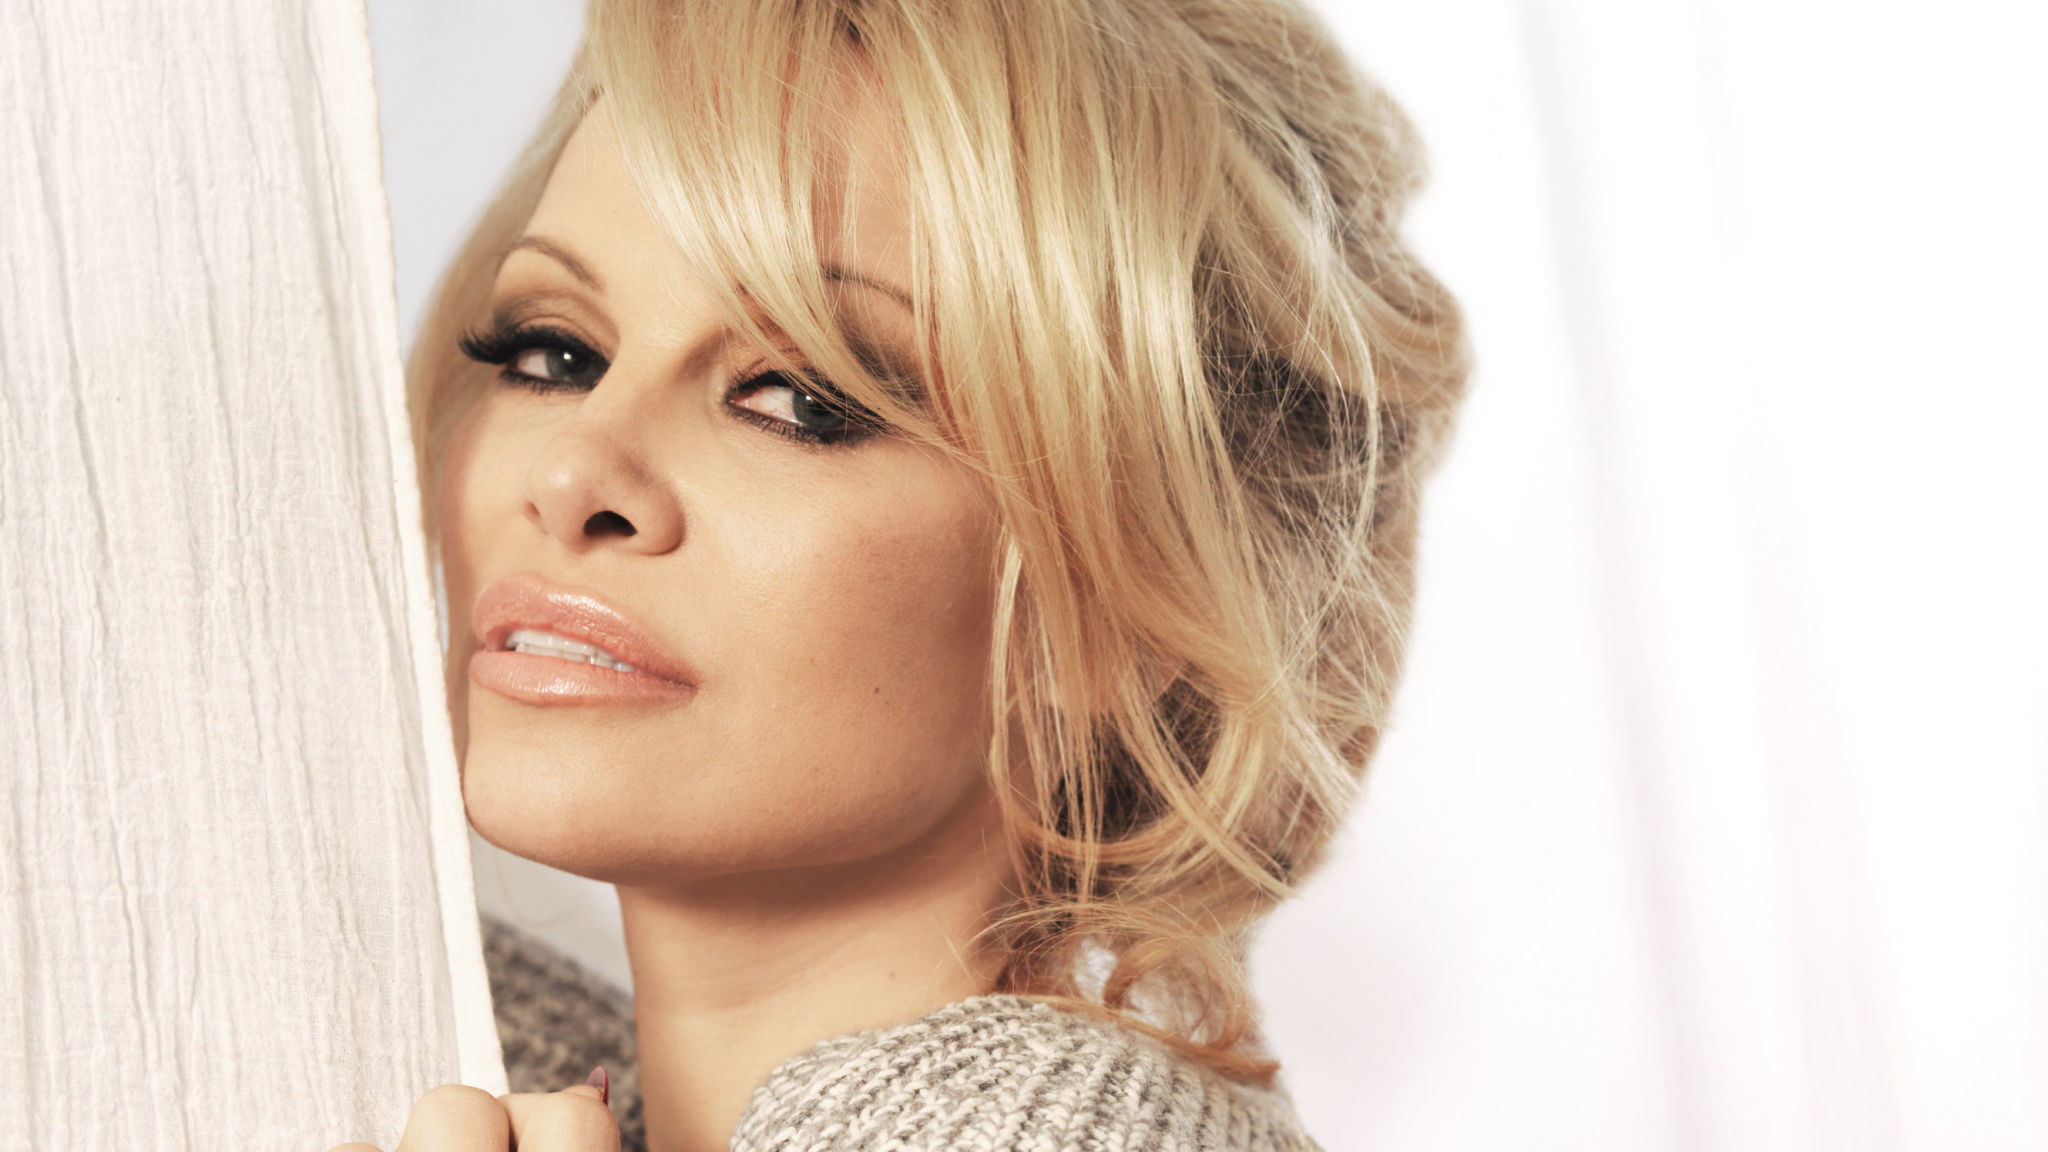 Pamela Anderson's still got it.